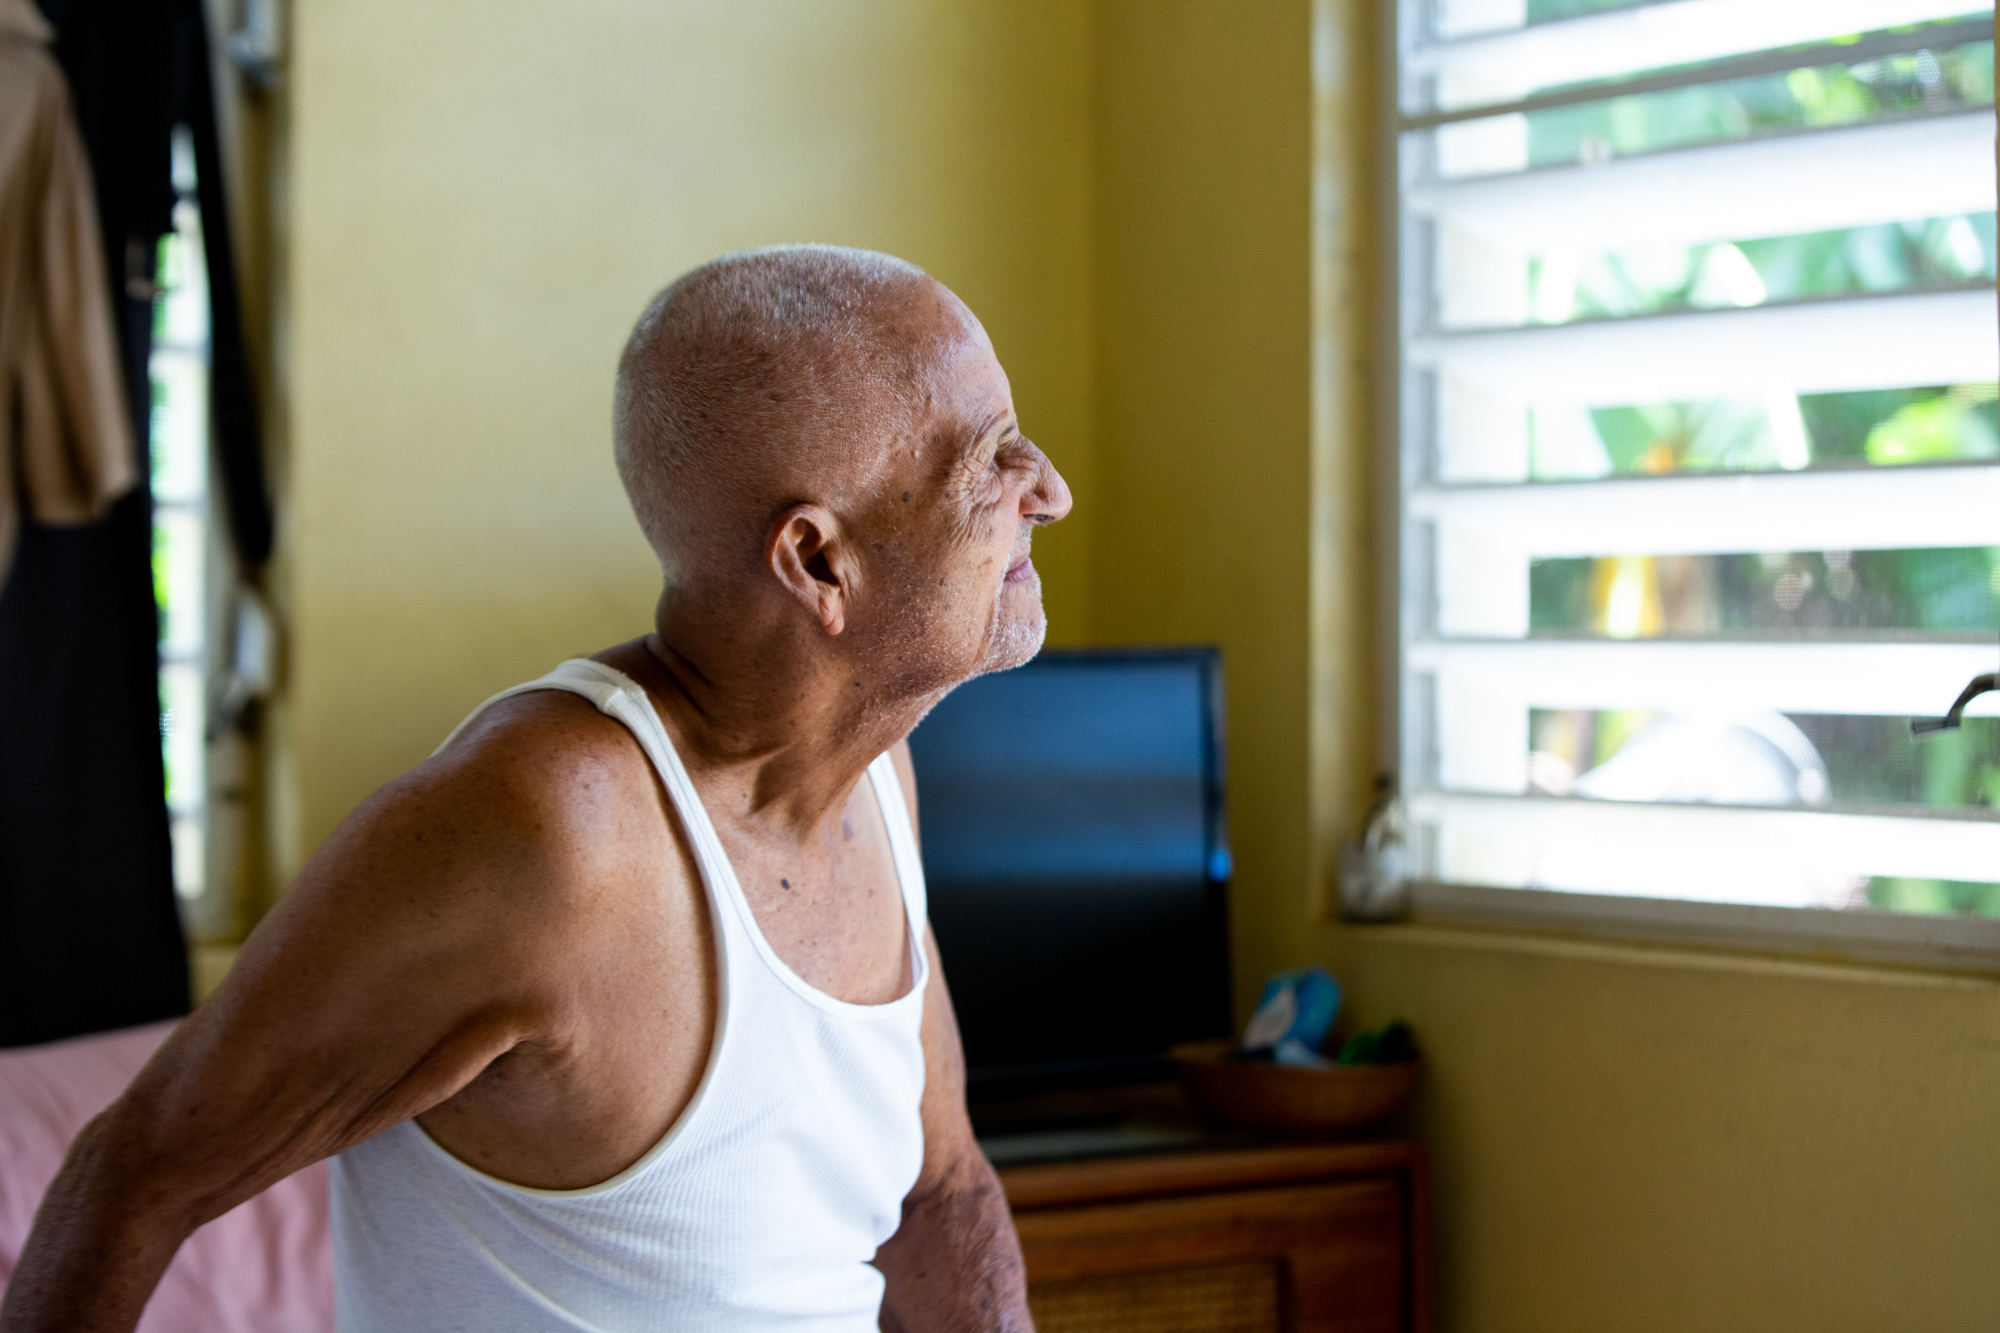 Guillermo Huertas - Guillermo Huertas, 90, has dementia and is living with his wife and daughter in Frederiksted, U.S. Virgin Islands. Although much of their house sustained heavy damage almost two years ago, the family is reluctant to move. (Anya Magnuson/News21)